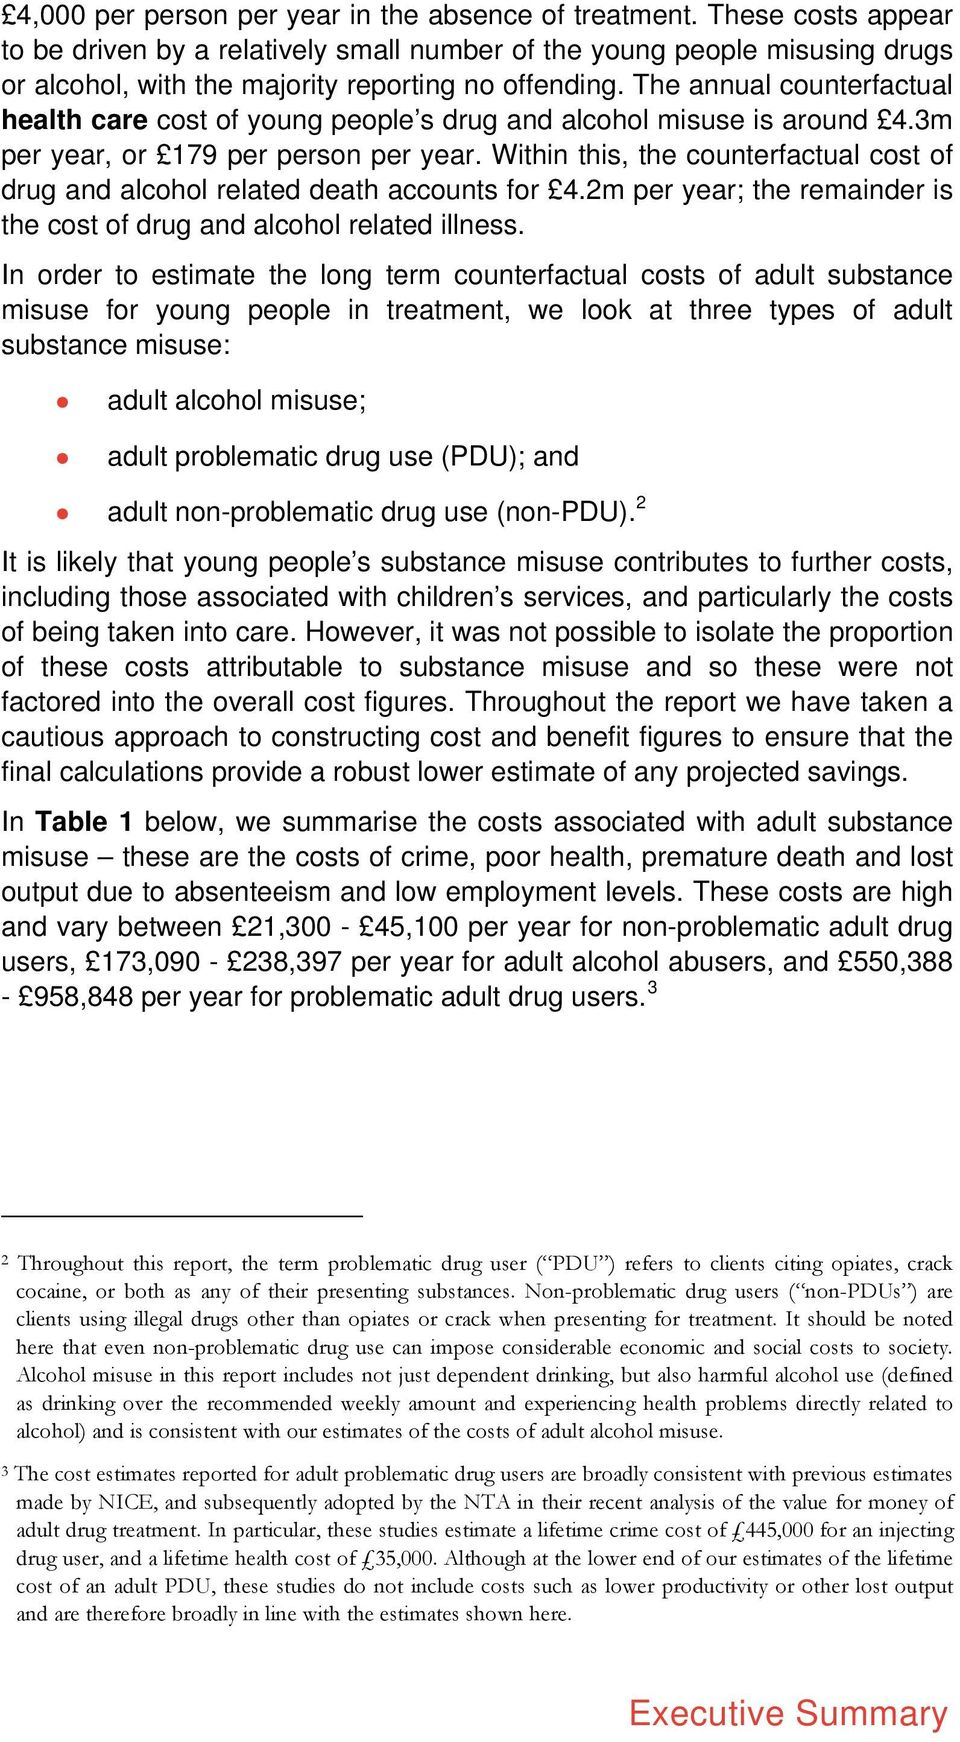 The annual counterfactual health care cost of young people s drug and alcohol misuse is around 4.3m per year, or 179 per person per year.